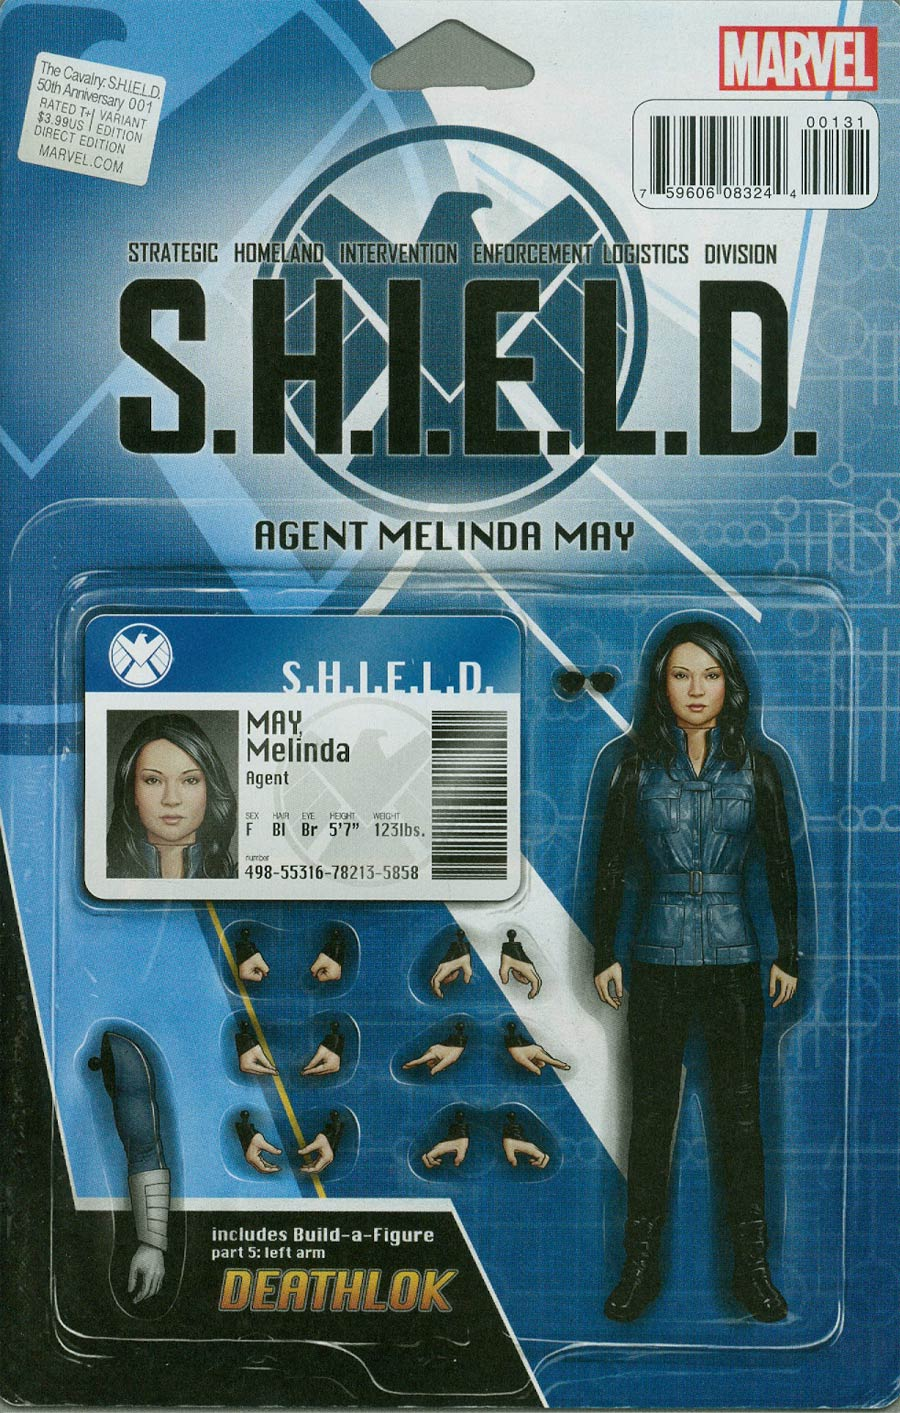 Cavalry S.H.I.E.L.D. 50th Anniversary #1 Cover C Variant John Tyler Christopher Action Figure Cover